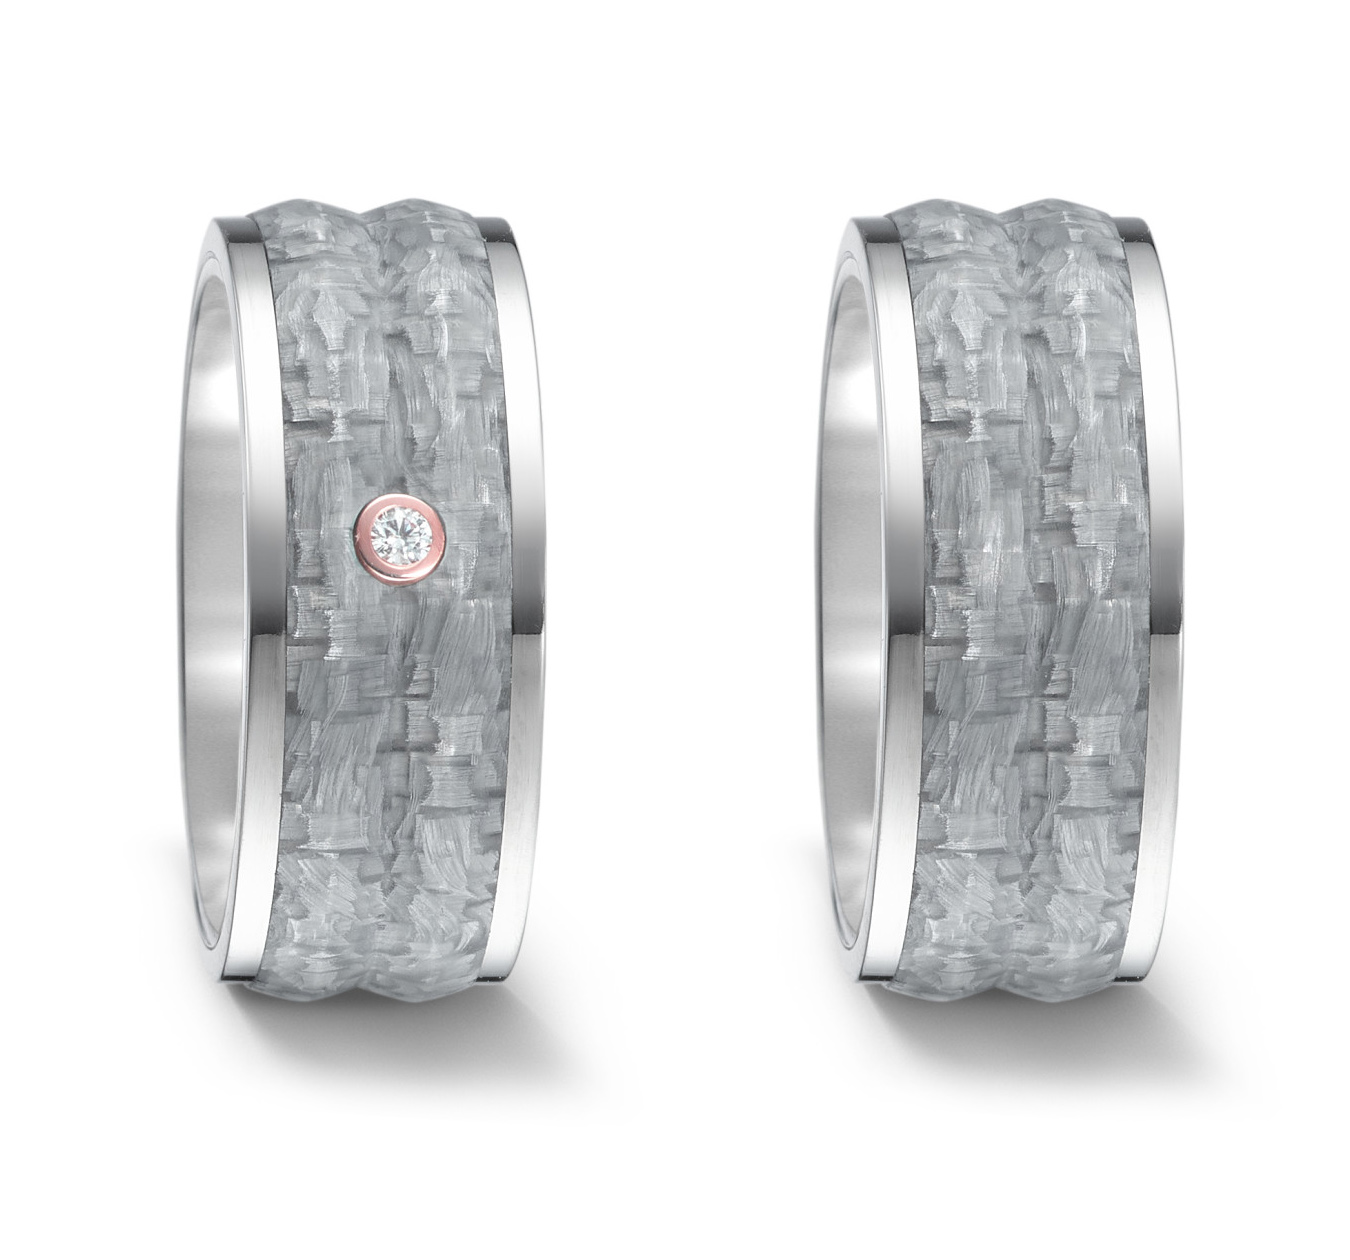 Wedding rings or friendship rings in titanium and gray carbon with a little diamond.